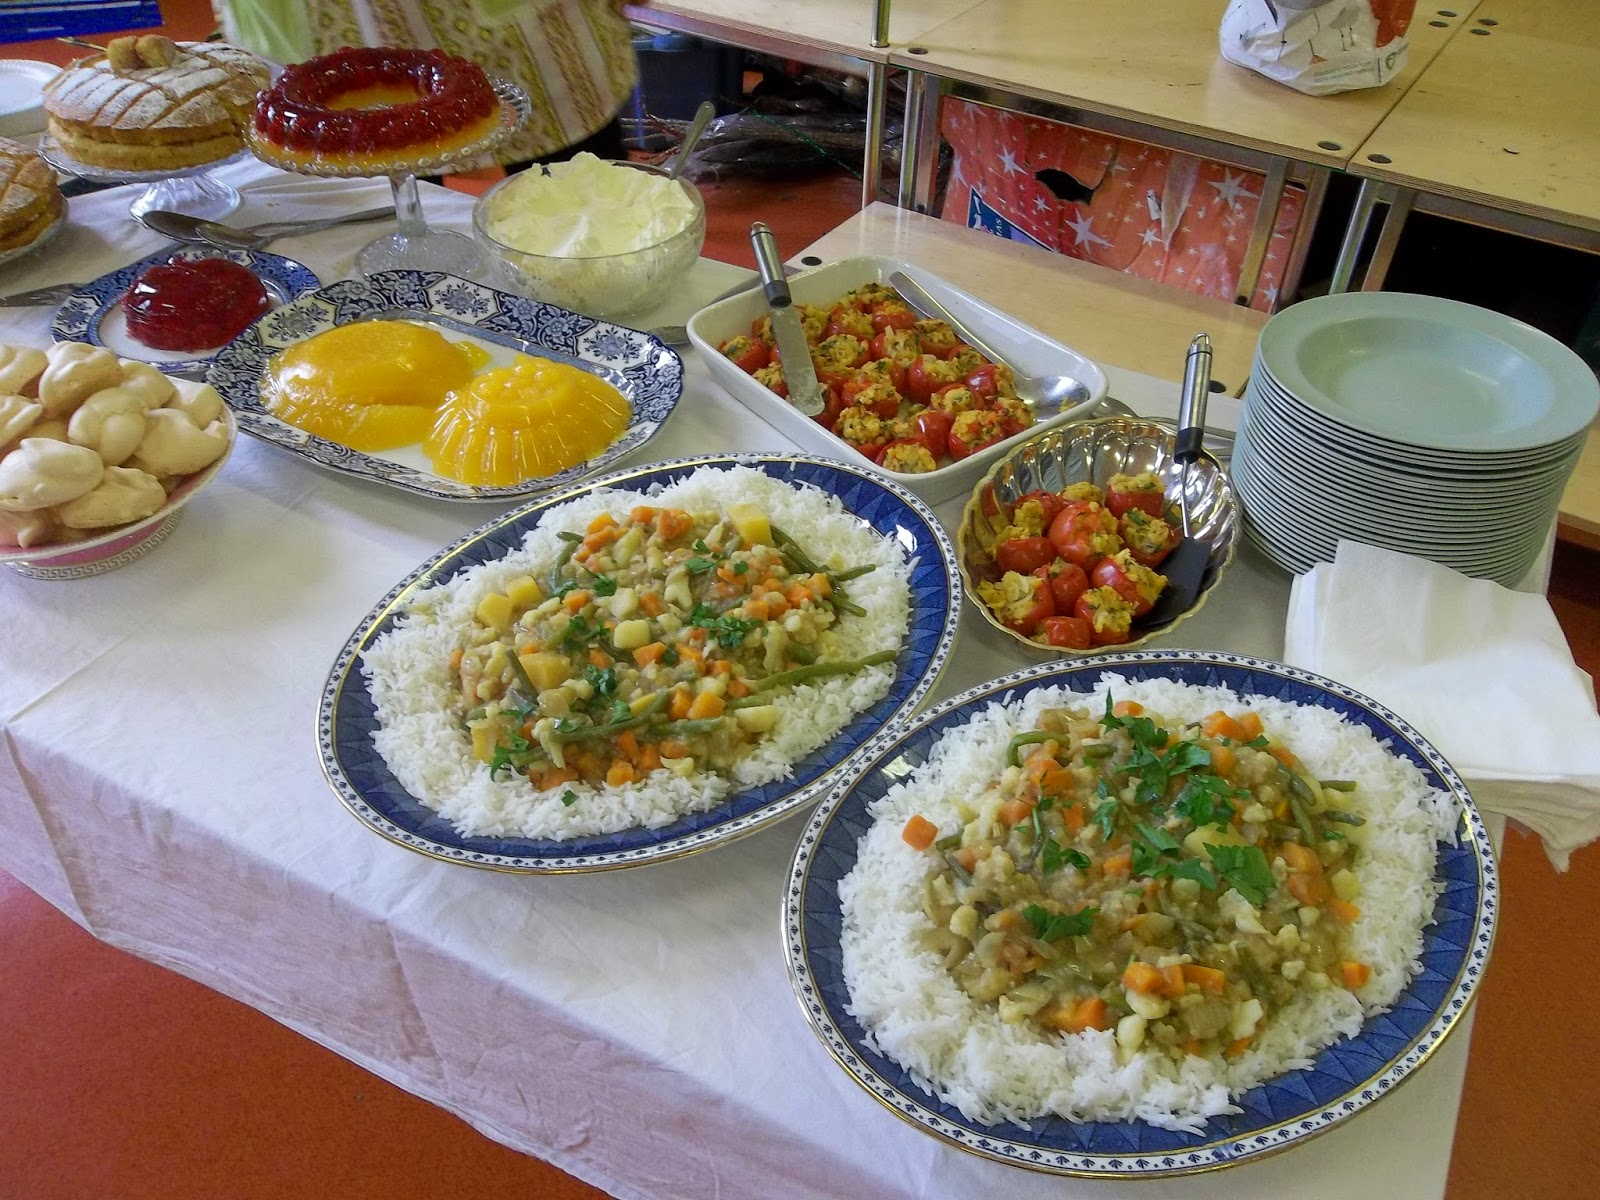 The 'First Class' food cooked by pupils at Blaise Primary School with Travelling Kitchen